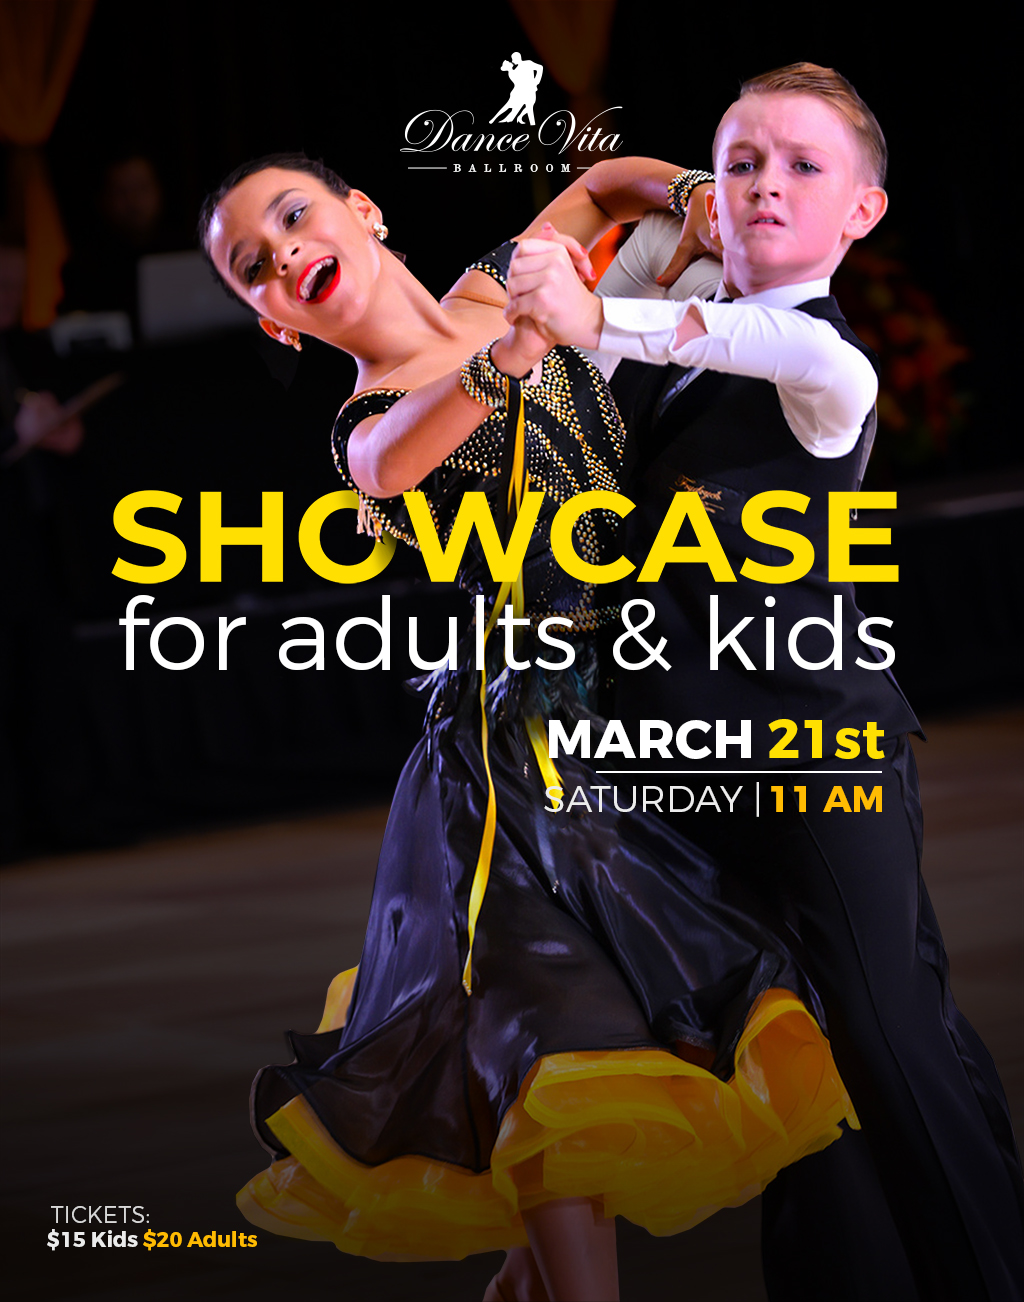 SHOWCASE for adults & kids